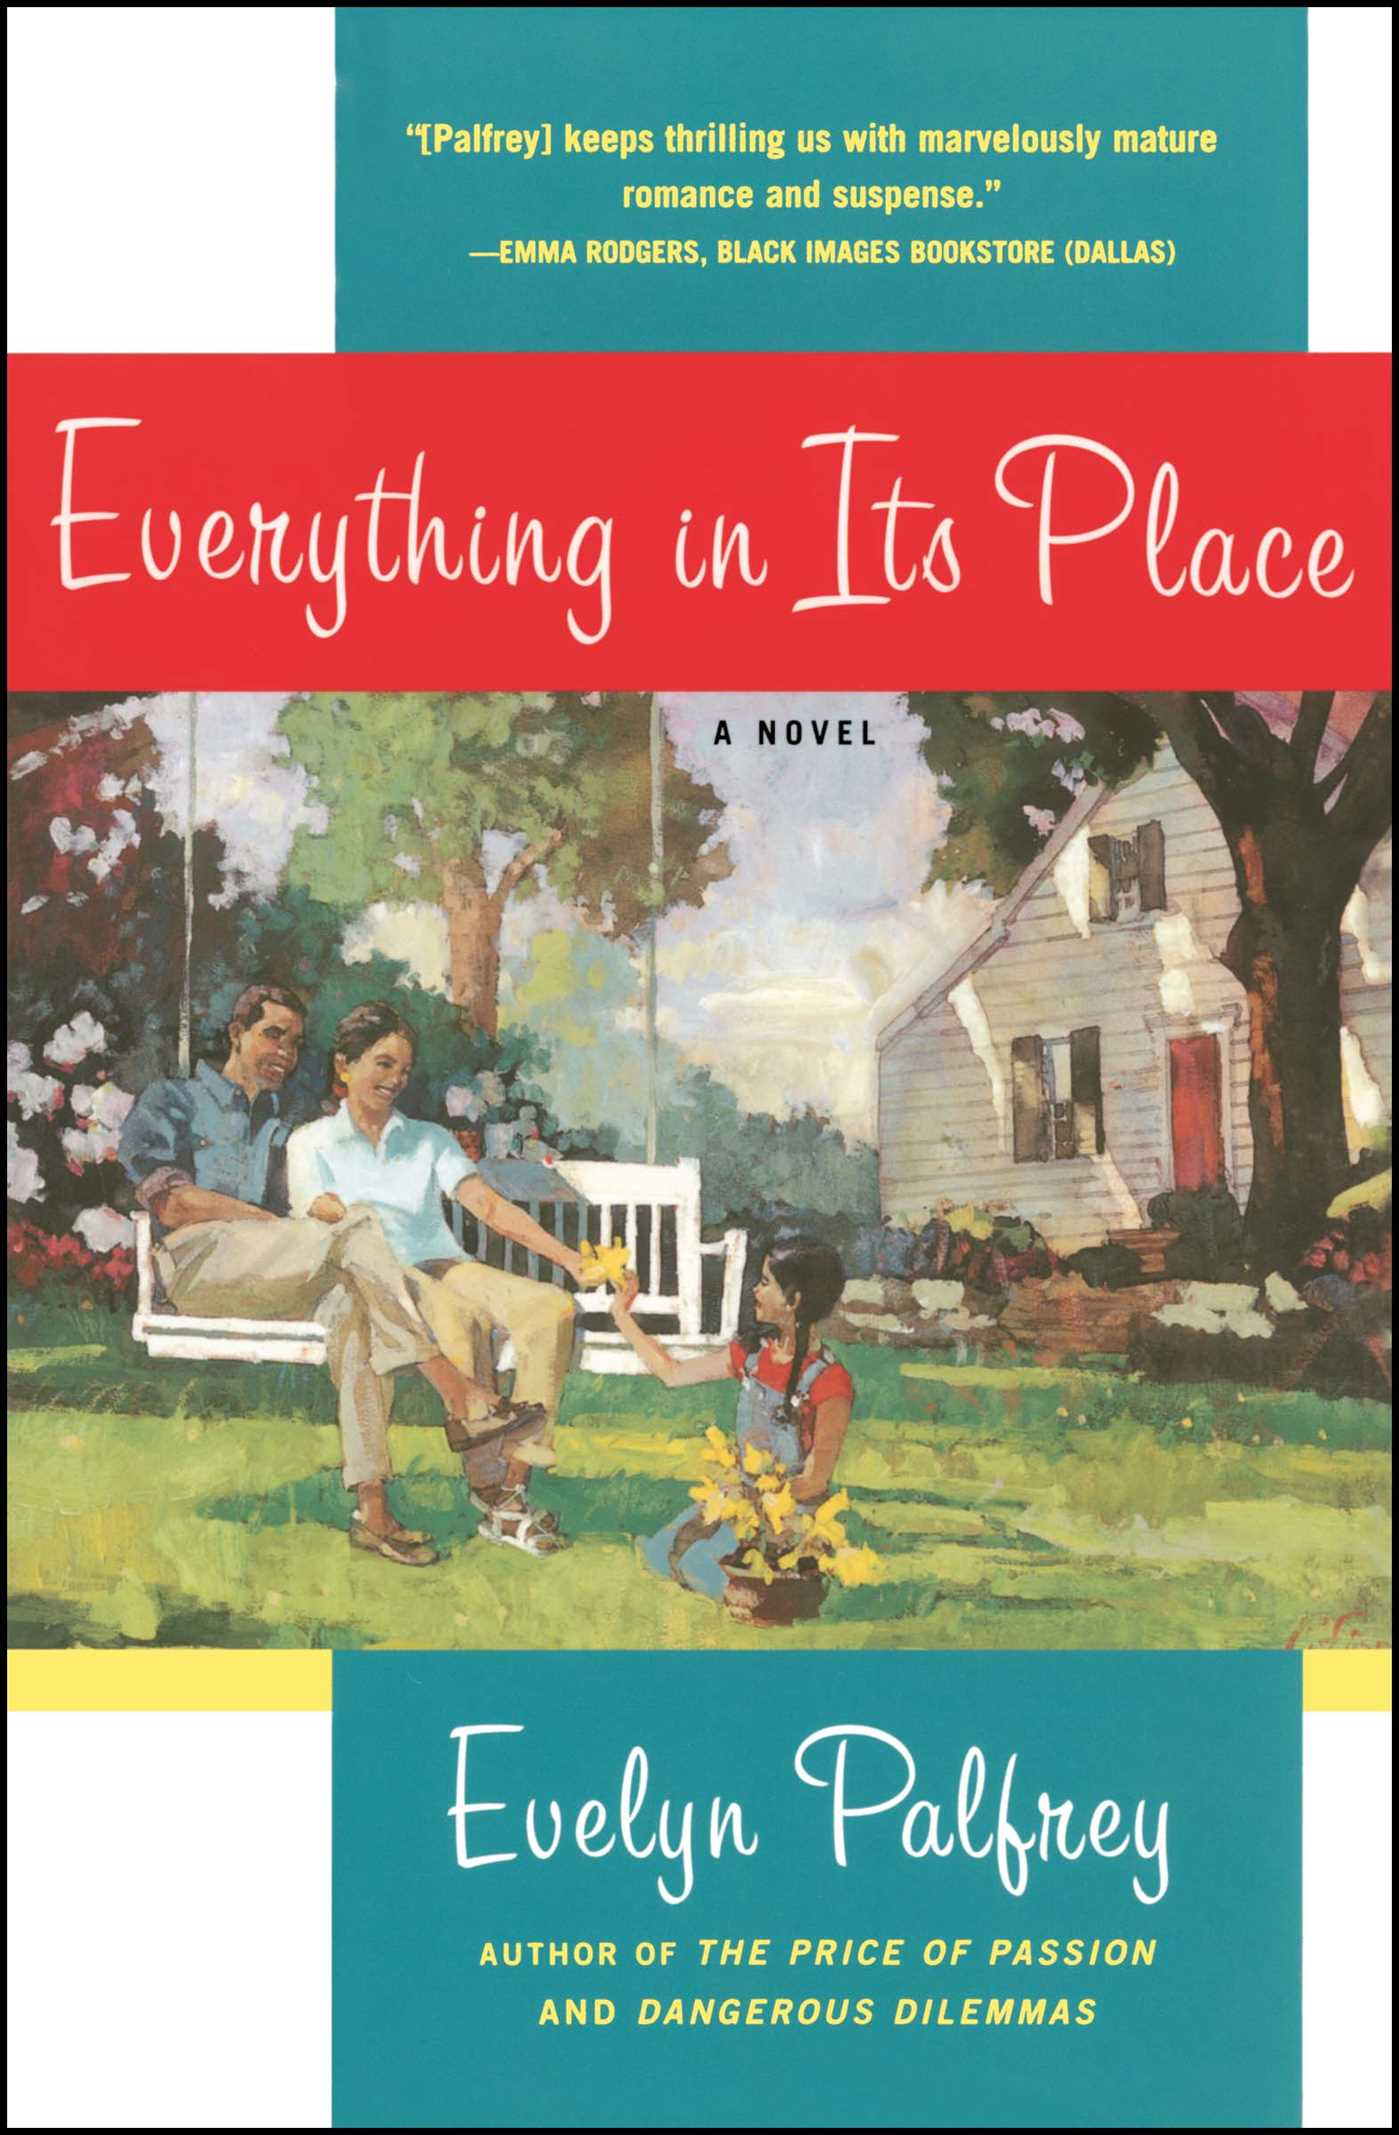 everything in its place essay The author of this essay stakes out a clear and insightful position on the issue  and  their horizons by learning more, going to new places, and trying new  things  started everything technically so clearly their thinking process is  deterioating.